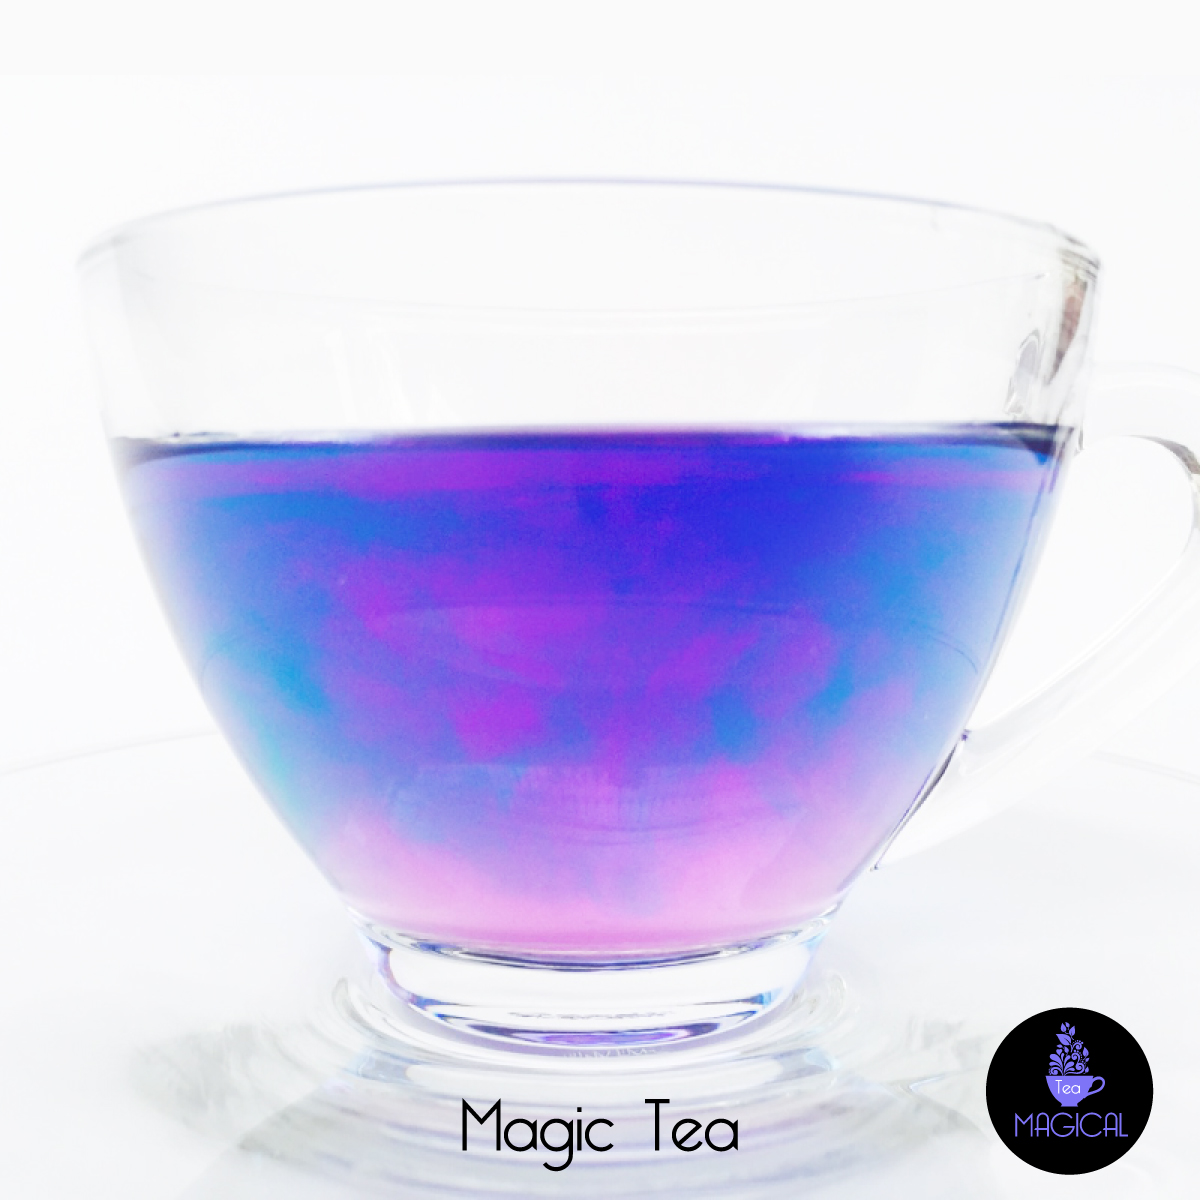 Magic tea couleur mer caraibe